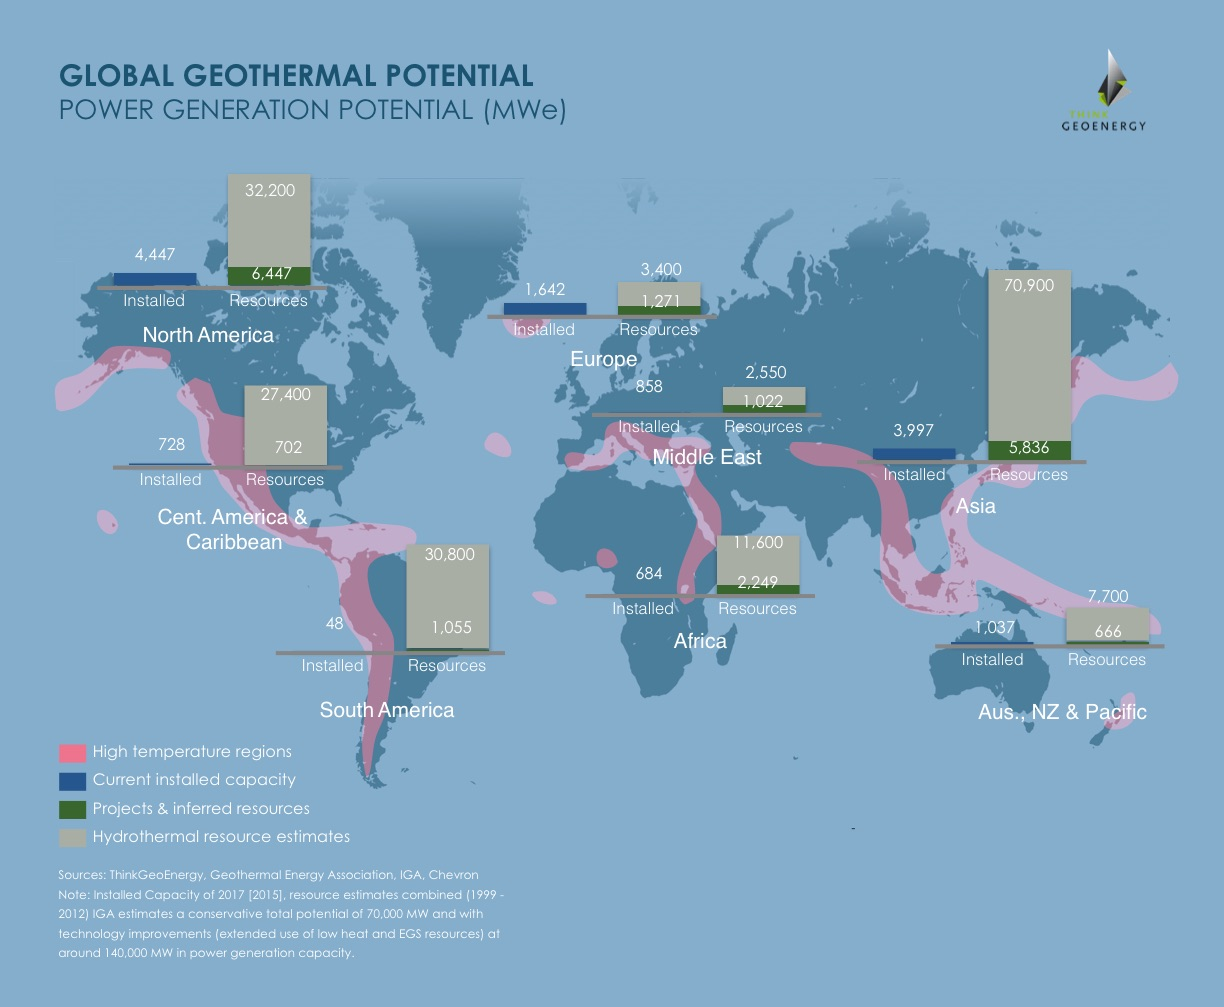 Global geothermal usage (adapted from original)